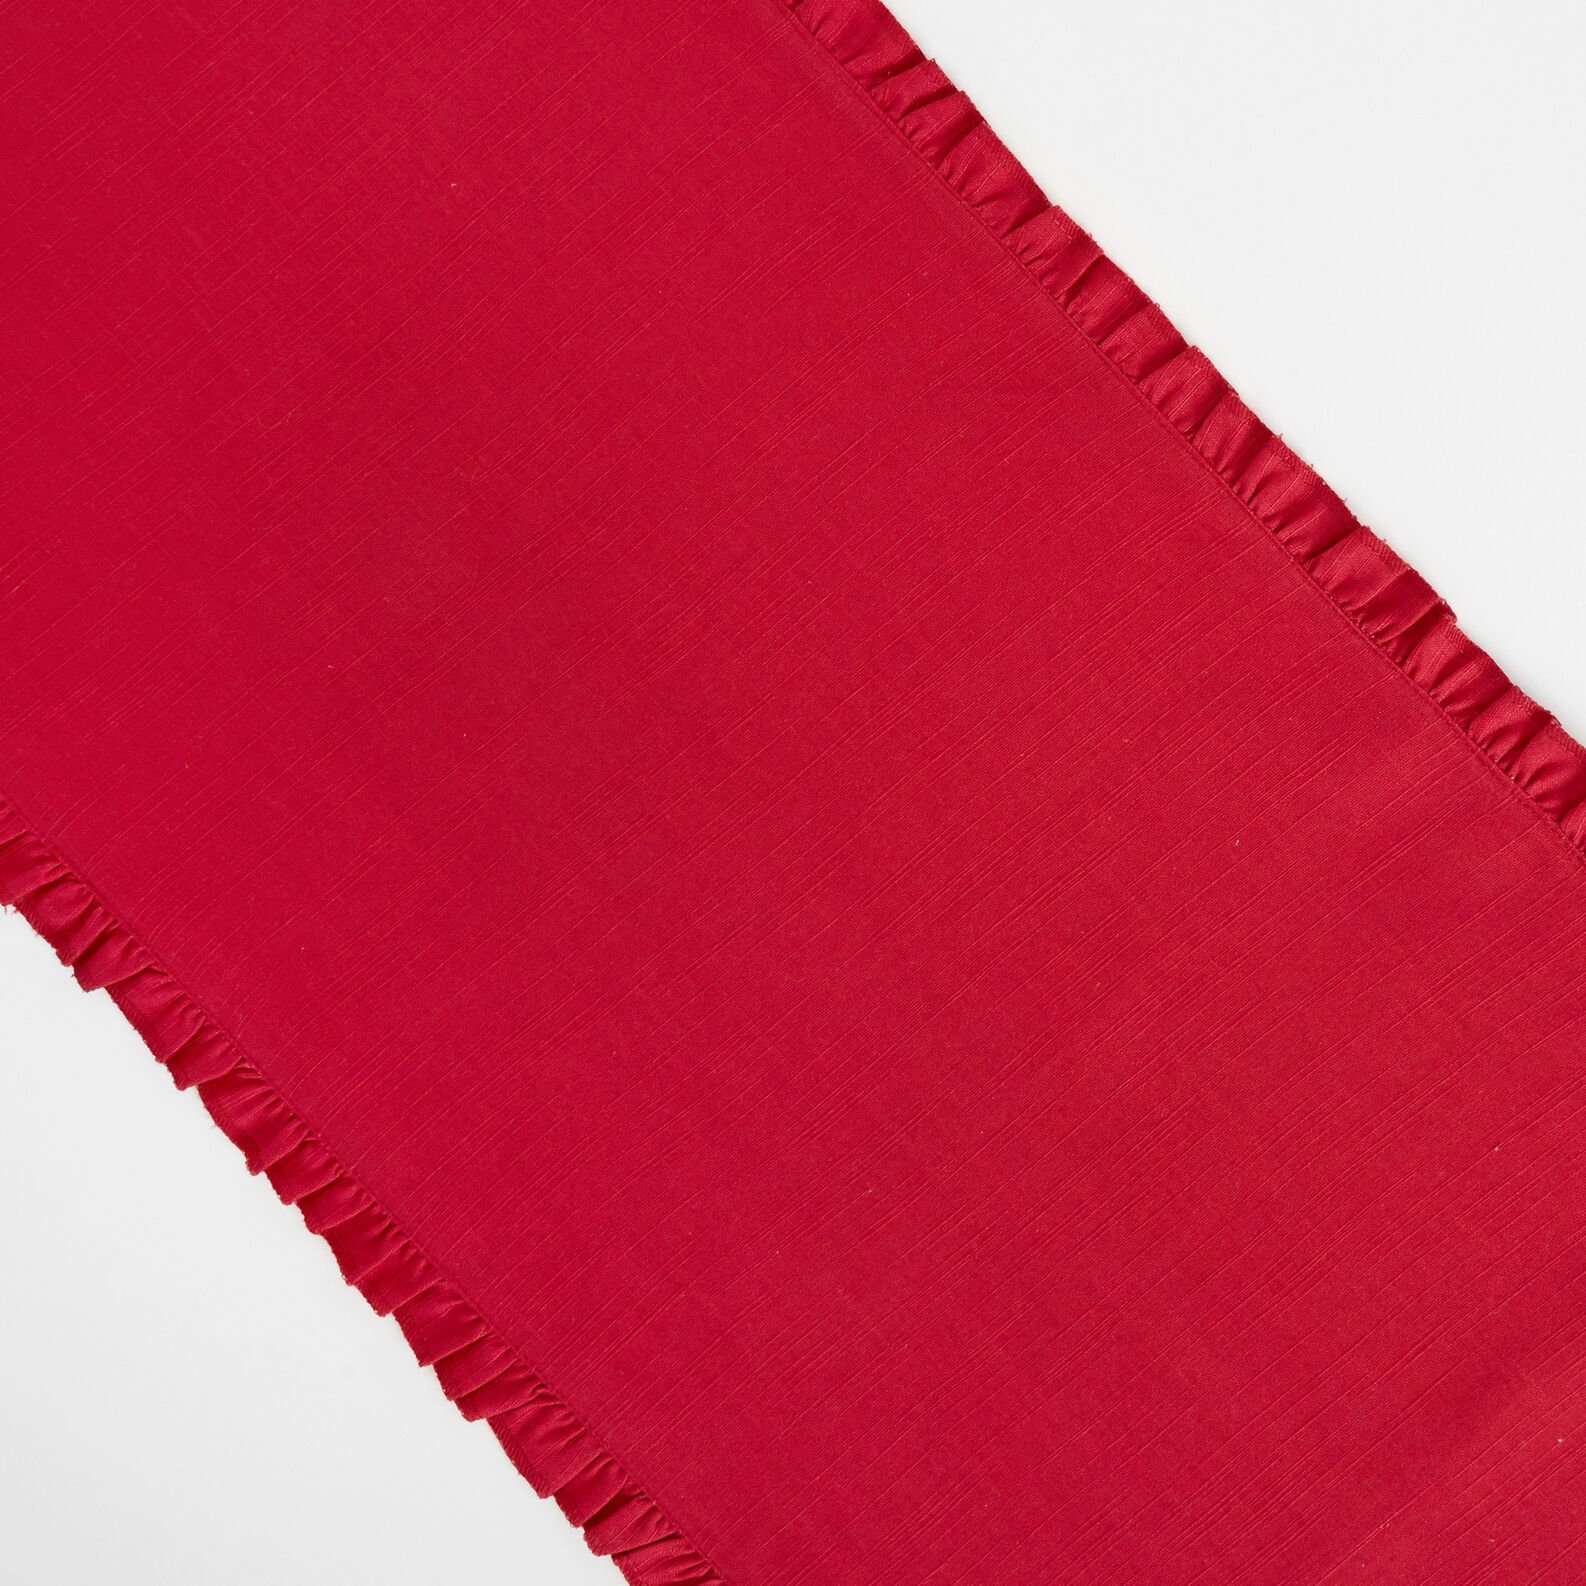 Table runner in 100% cotton with flounce trim